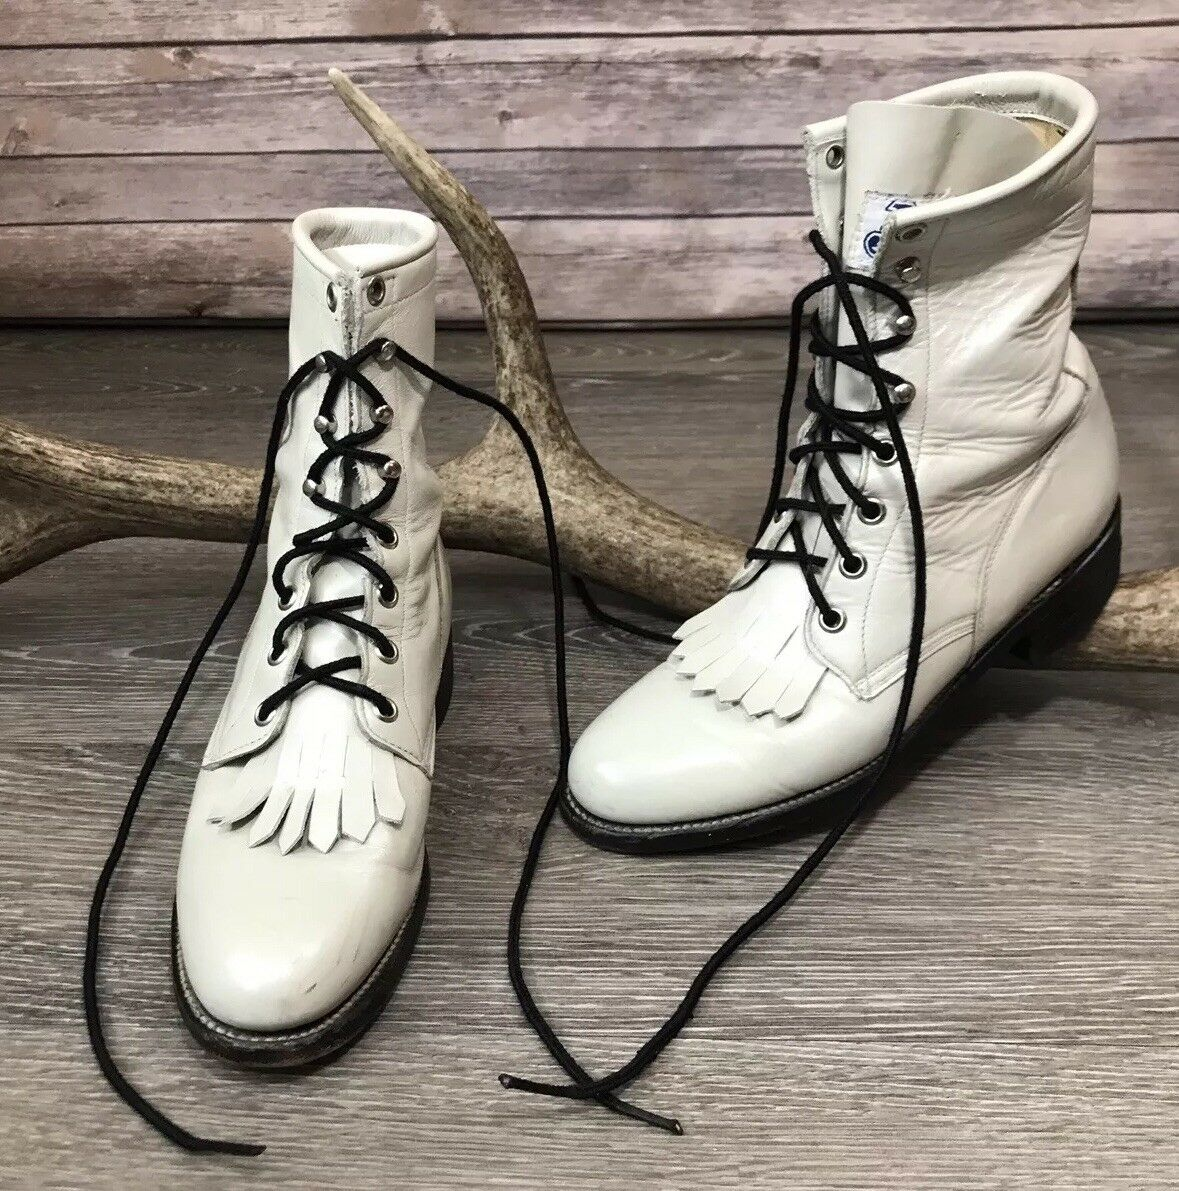 Justin USA Ivory Leather Western Lace Up Kiltie Roper Boots shoes Women's 5.5 B